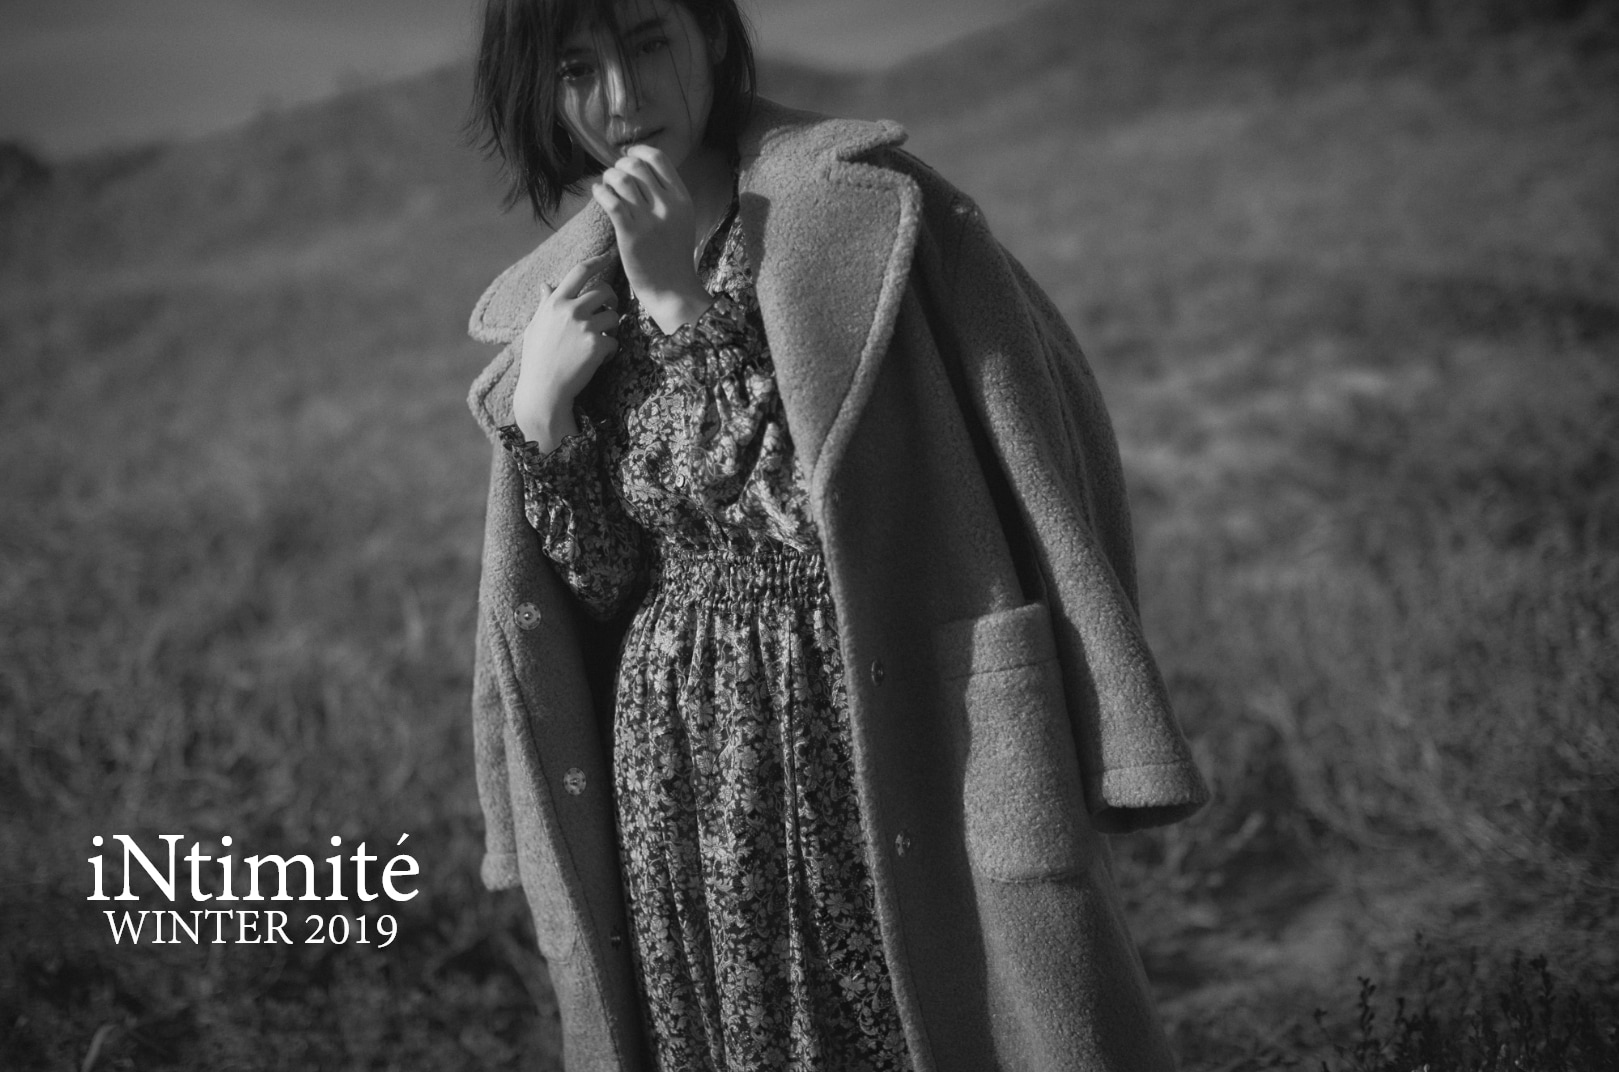 iNtimite 2019 Winter Collection